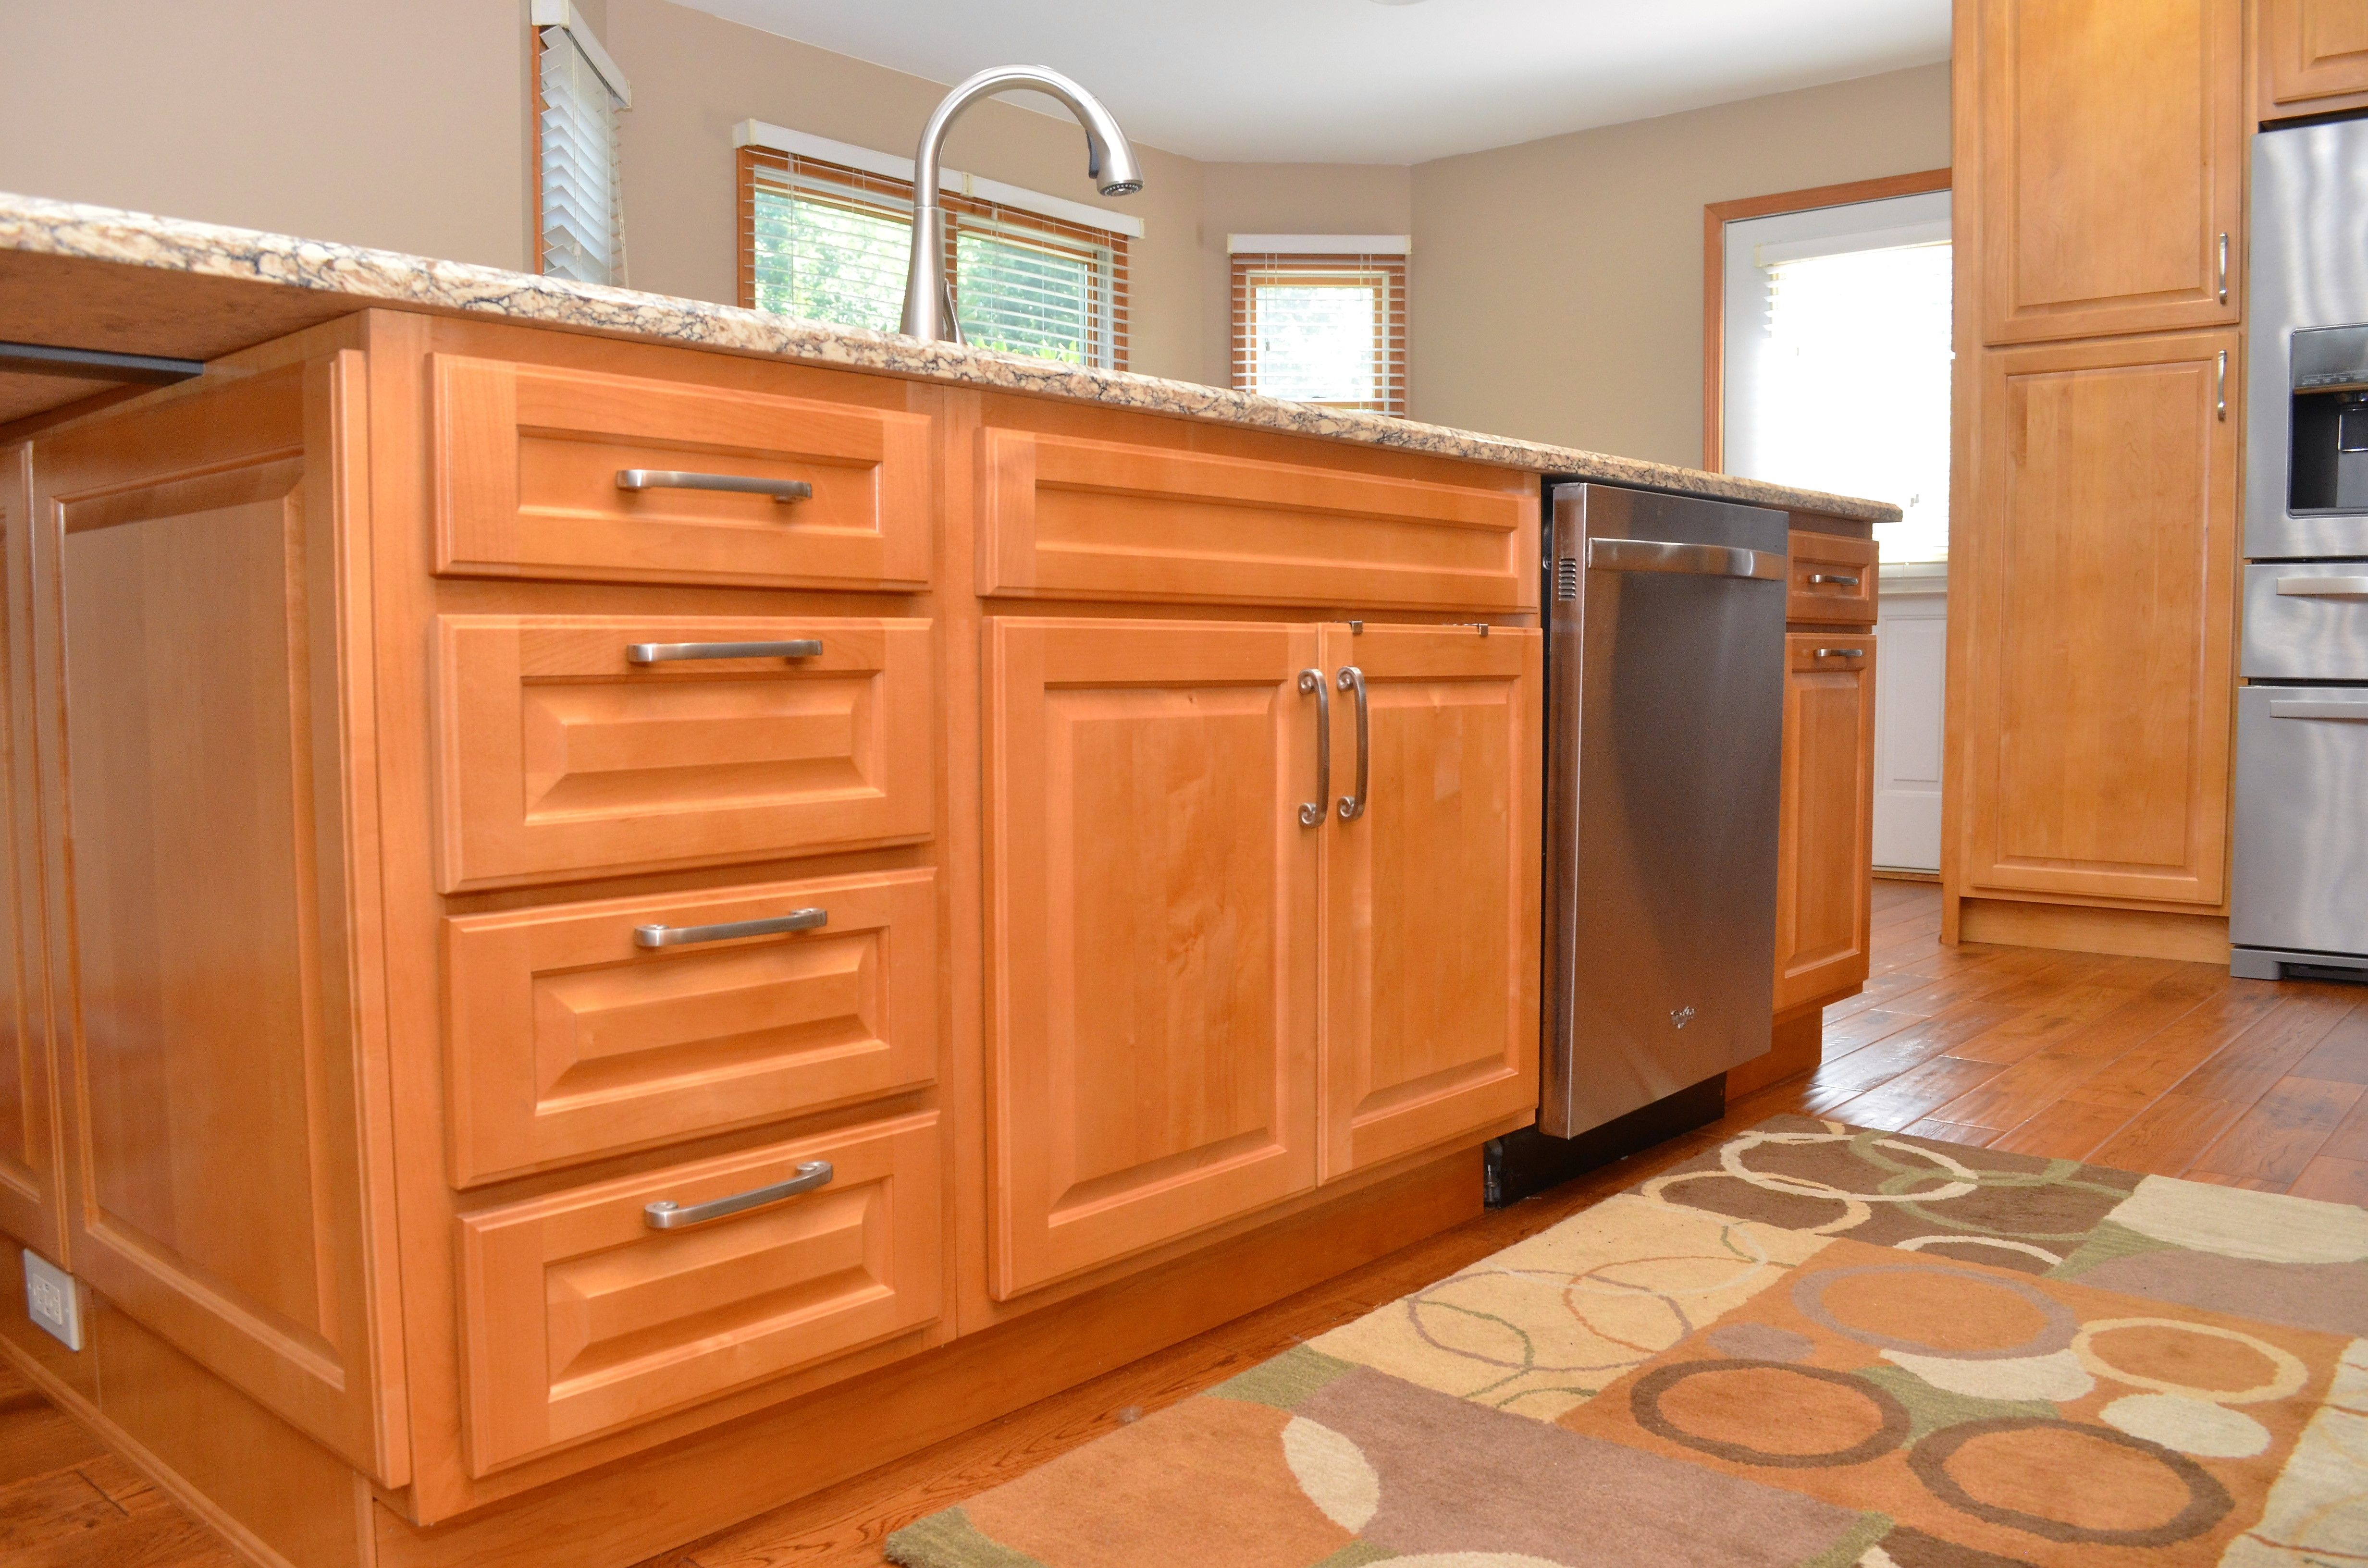 Haas Signature Collection Federal Arch Door Style Maple Honey Arched Doors Cabinet Maple Cabinets